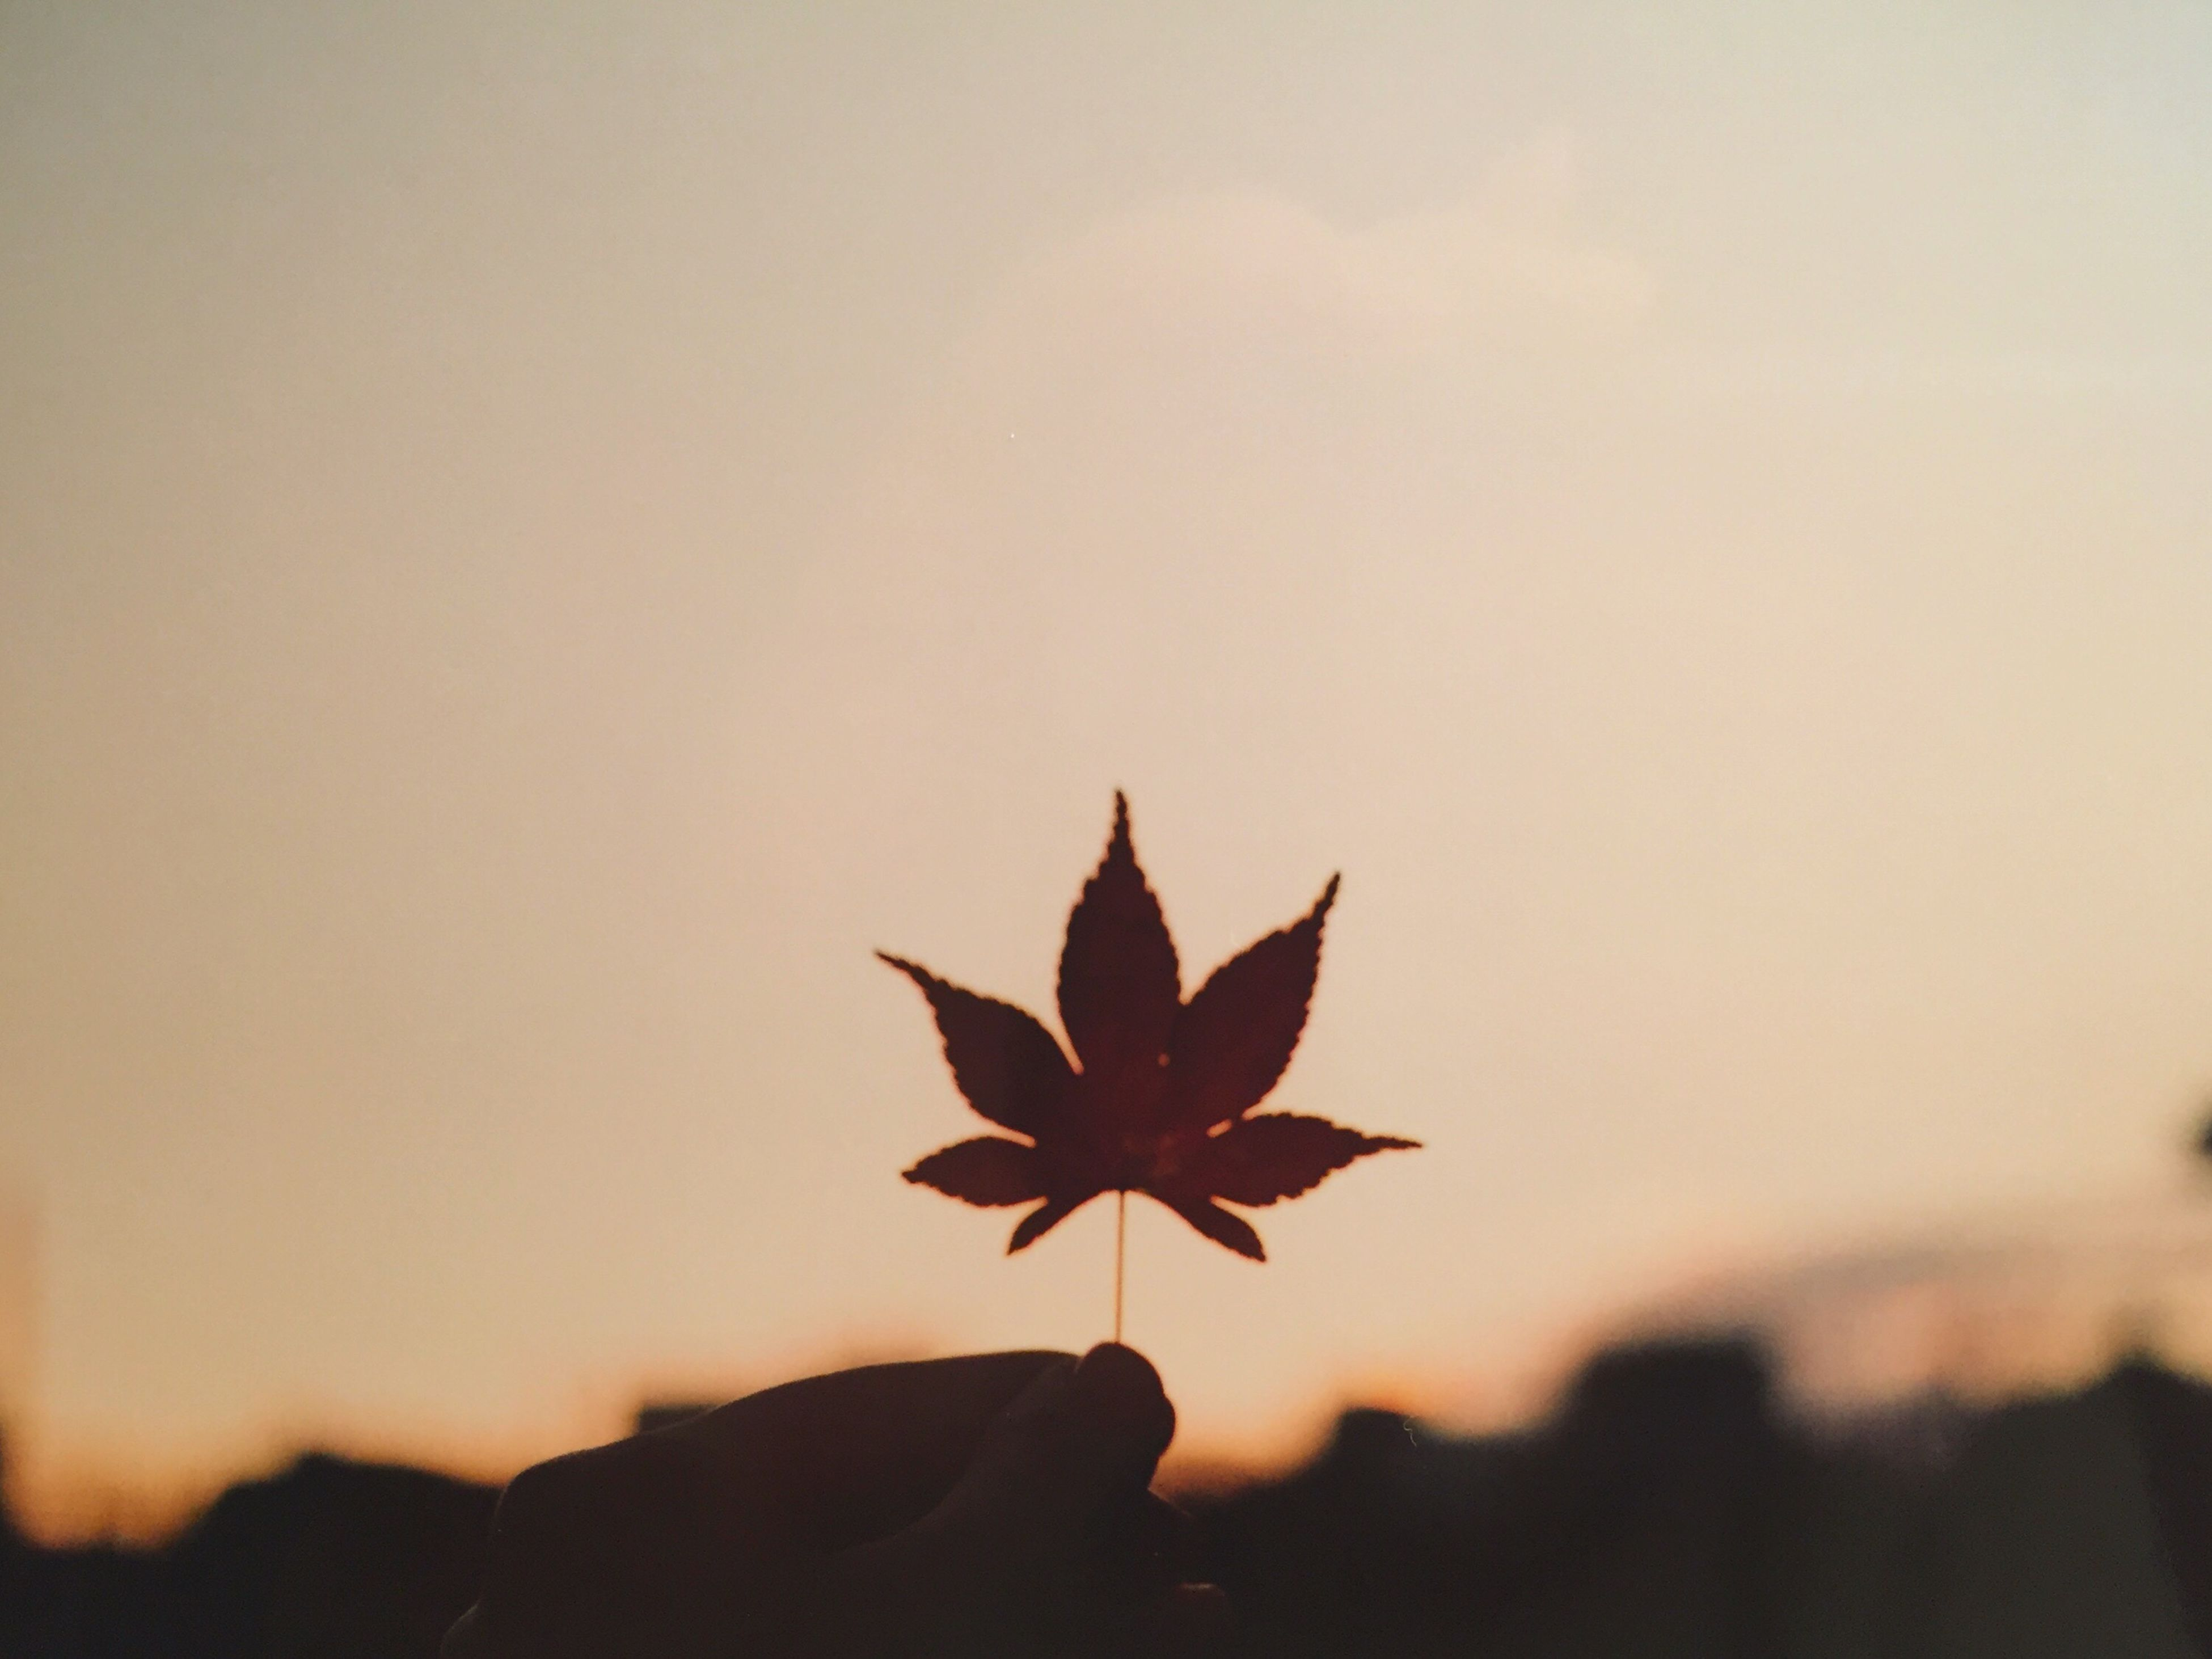 autumn, leaf, nature, focus on foreground, dry, silhouette, sunset, close-up, tranquility, change, beauty in nature, sky, clear sky, orange color, copy space, season, outdoors, maple leaf, tranquil scene, no people